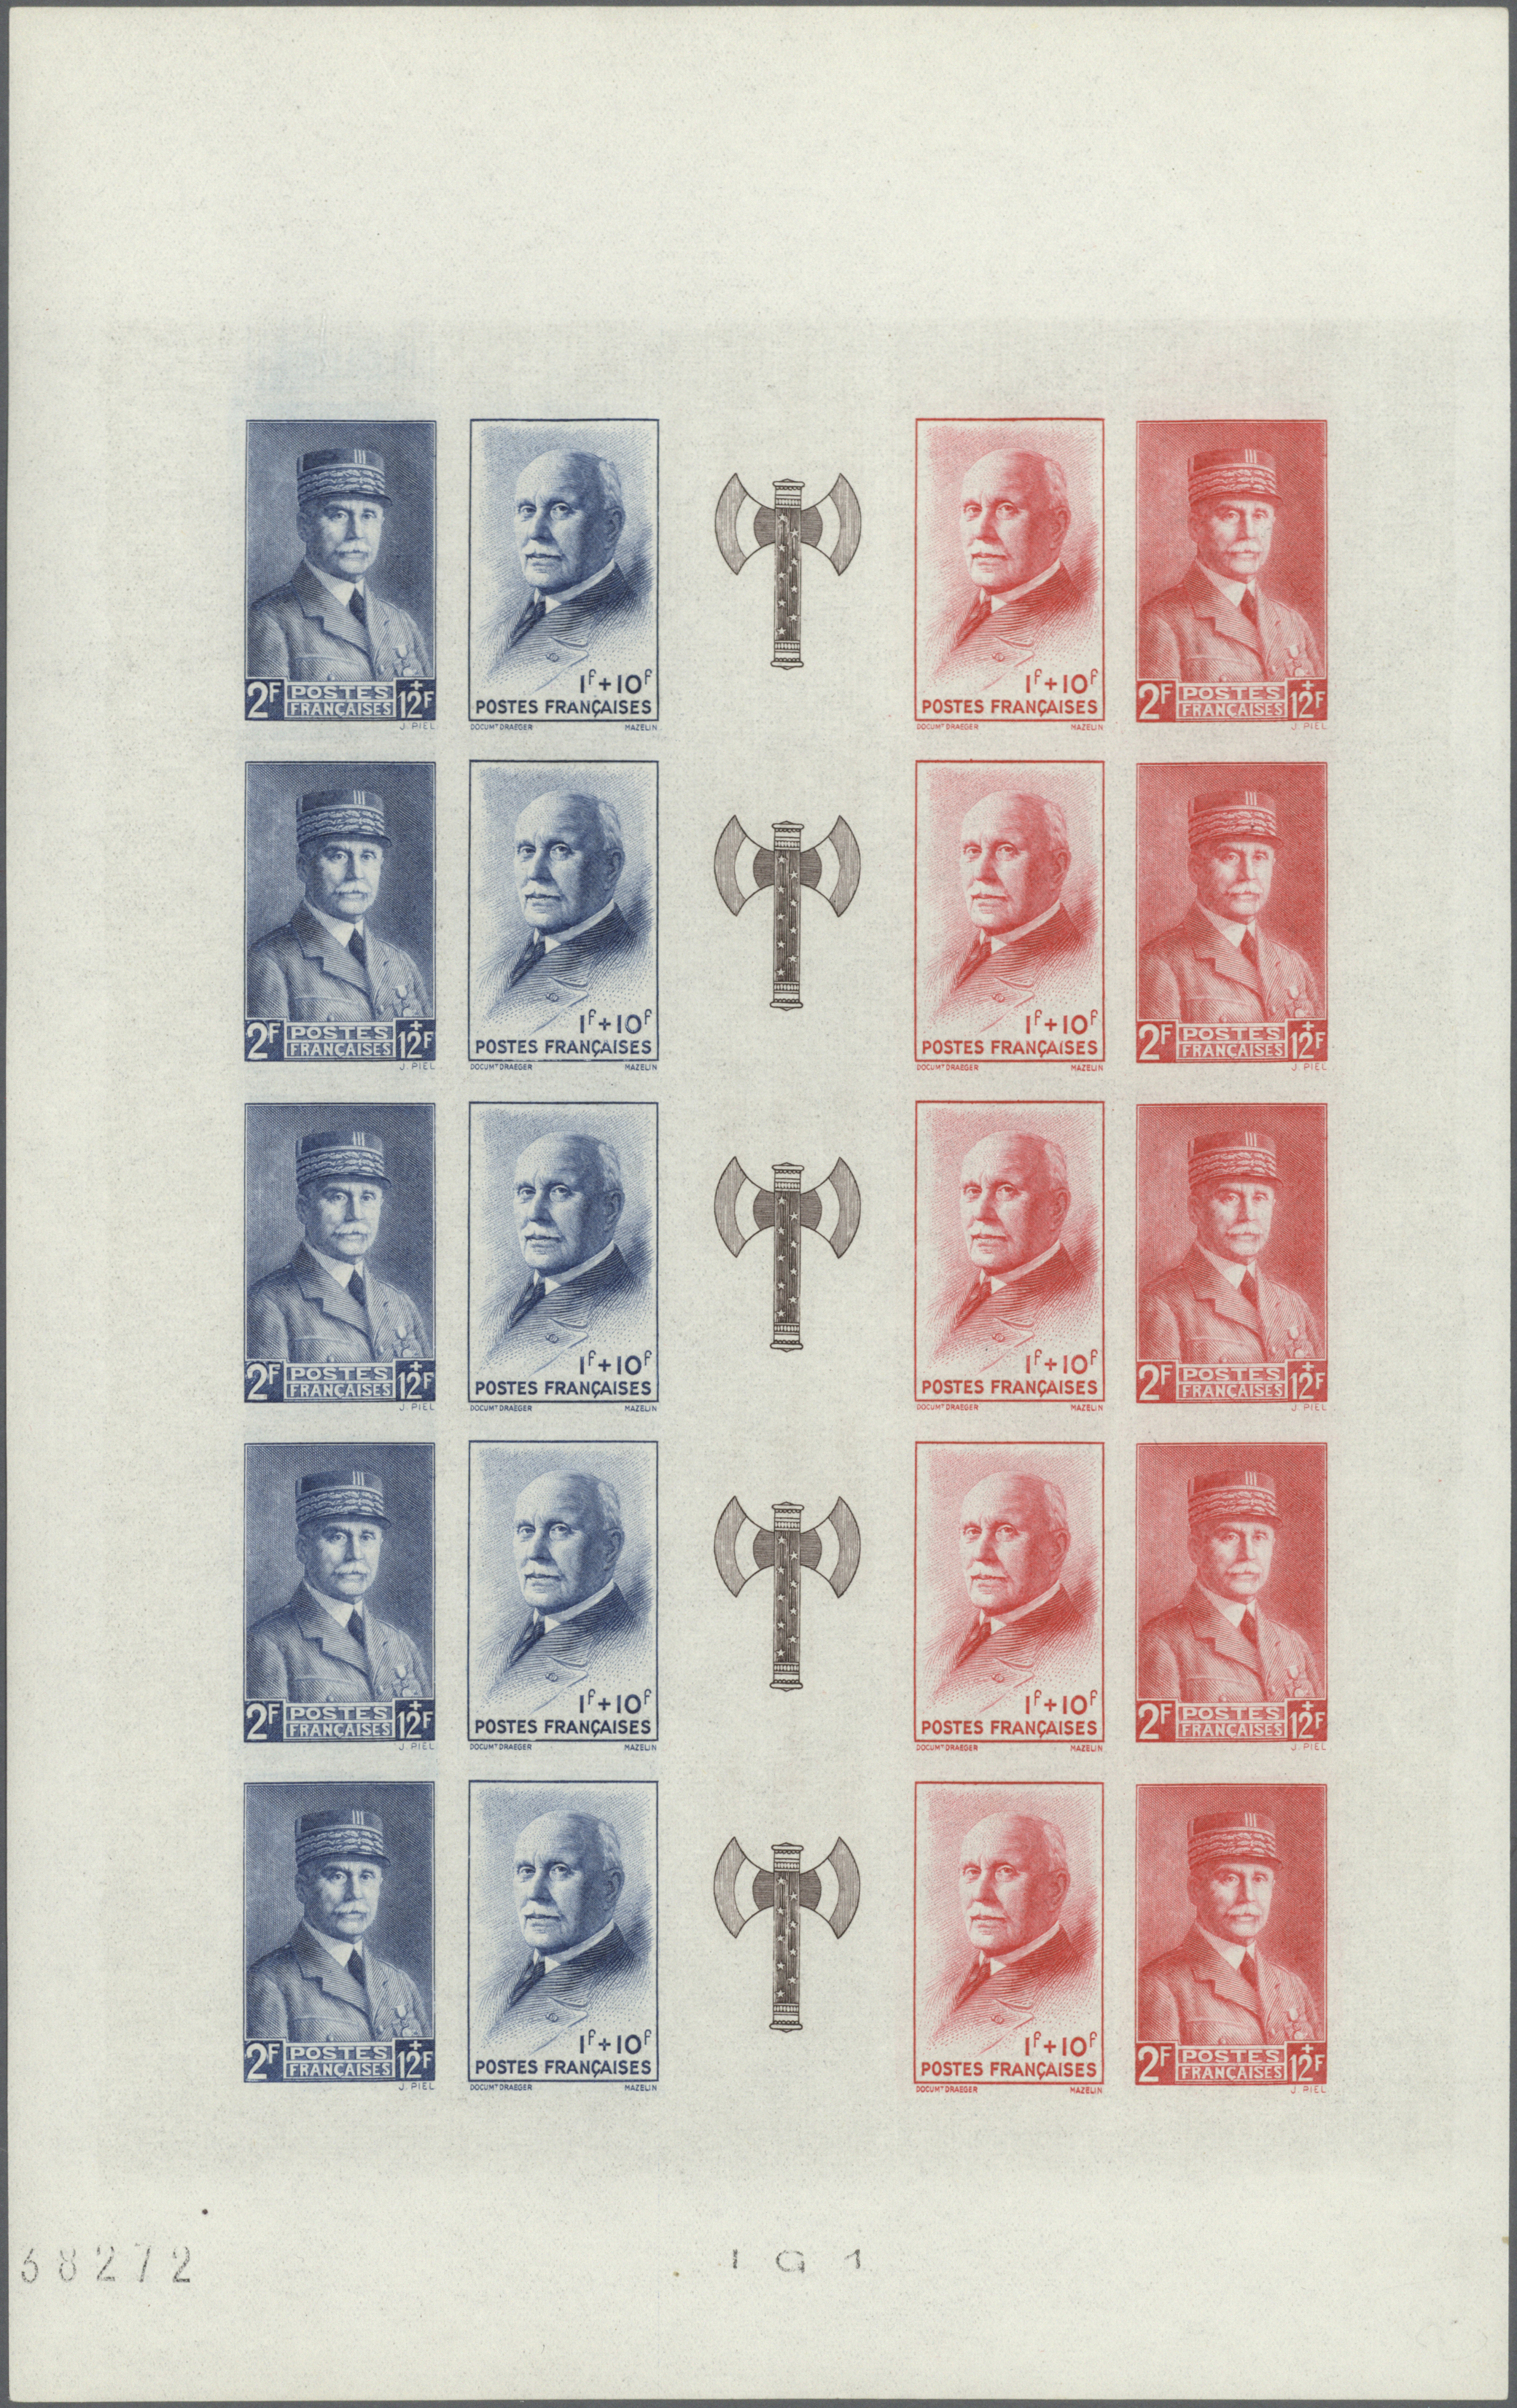 Stamp Auction - frankreich - Europe Auction #42 Day 4, lot 9474